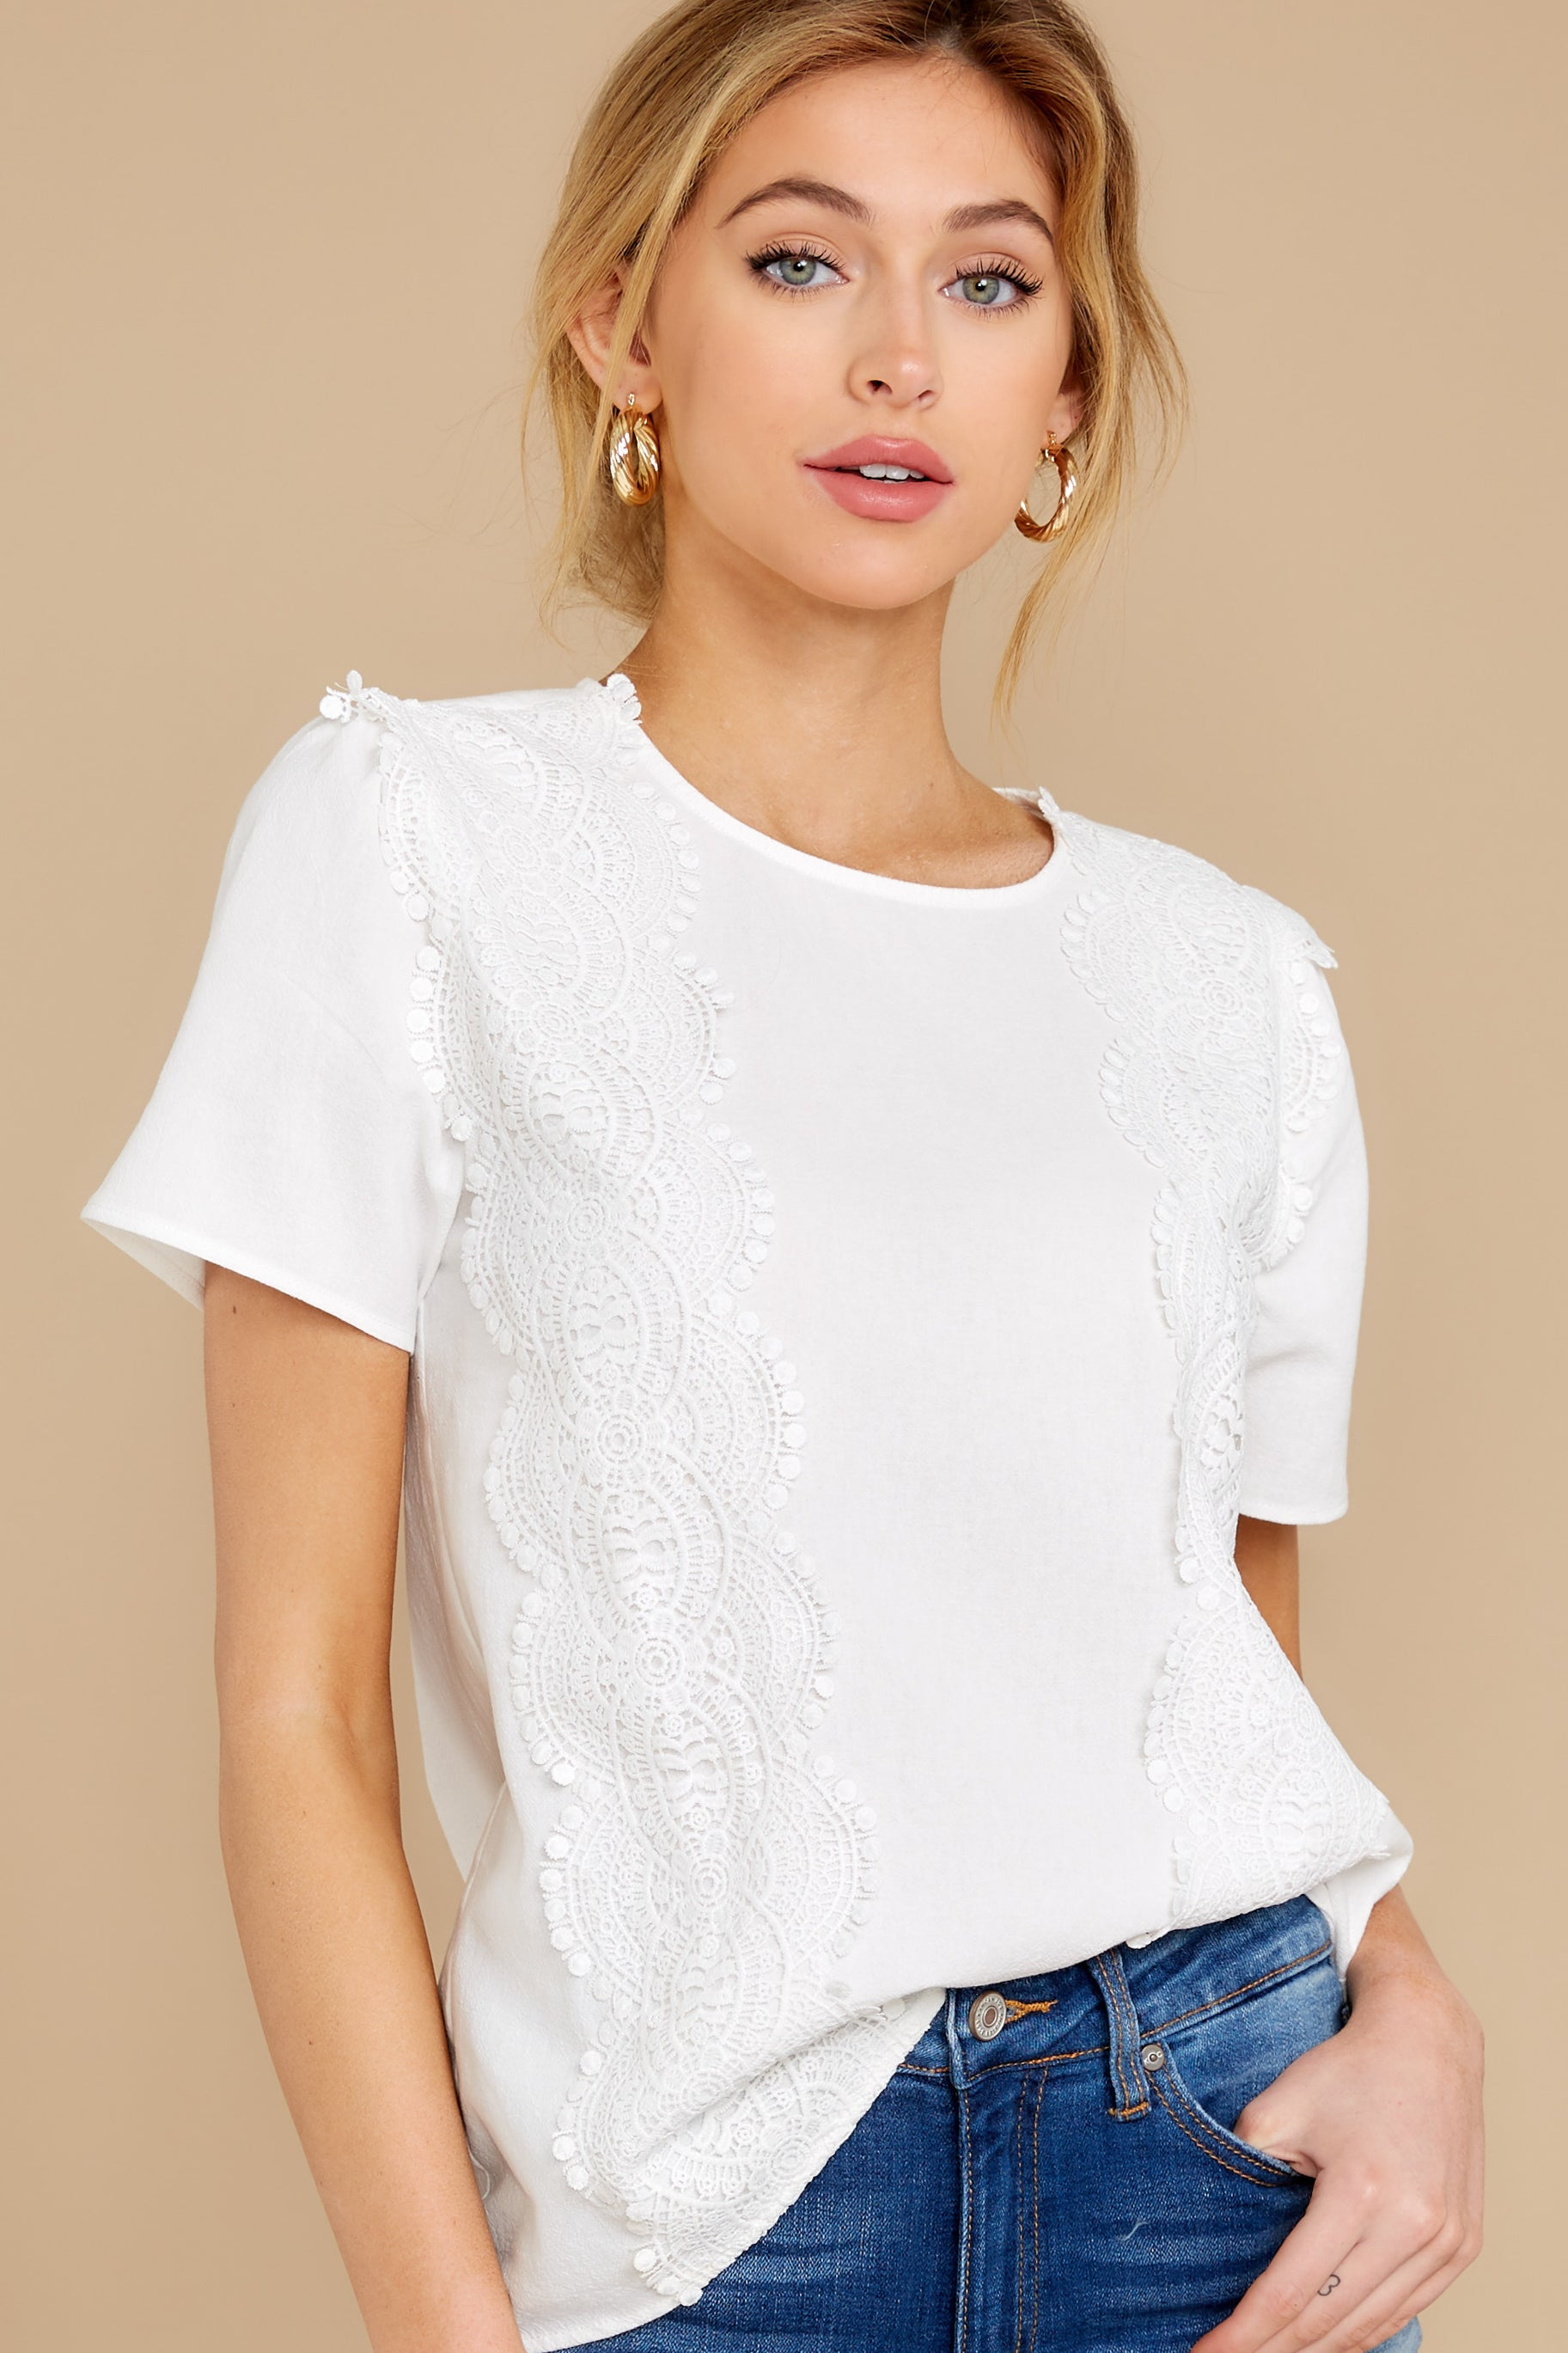 5 Meet You Here White Lace Top at reddress.com